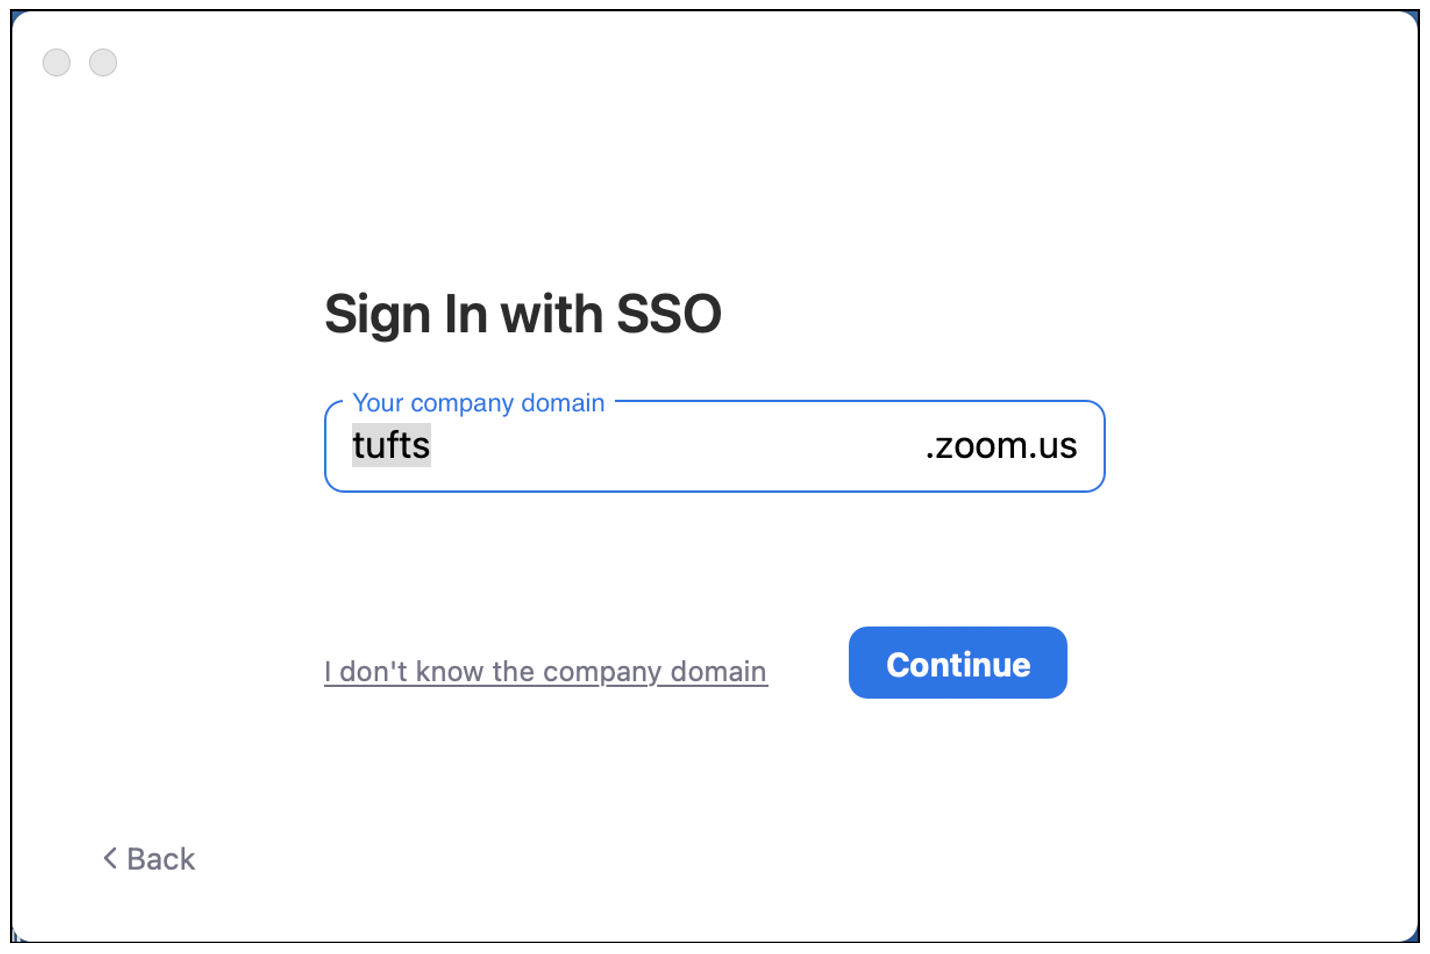 tufts.zoom.us company domain